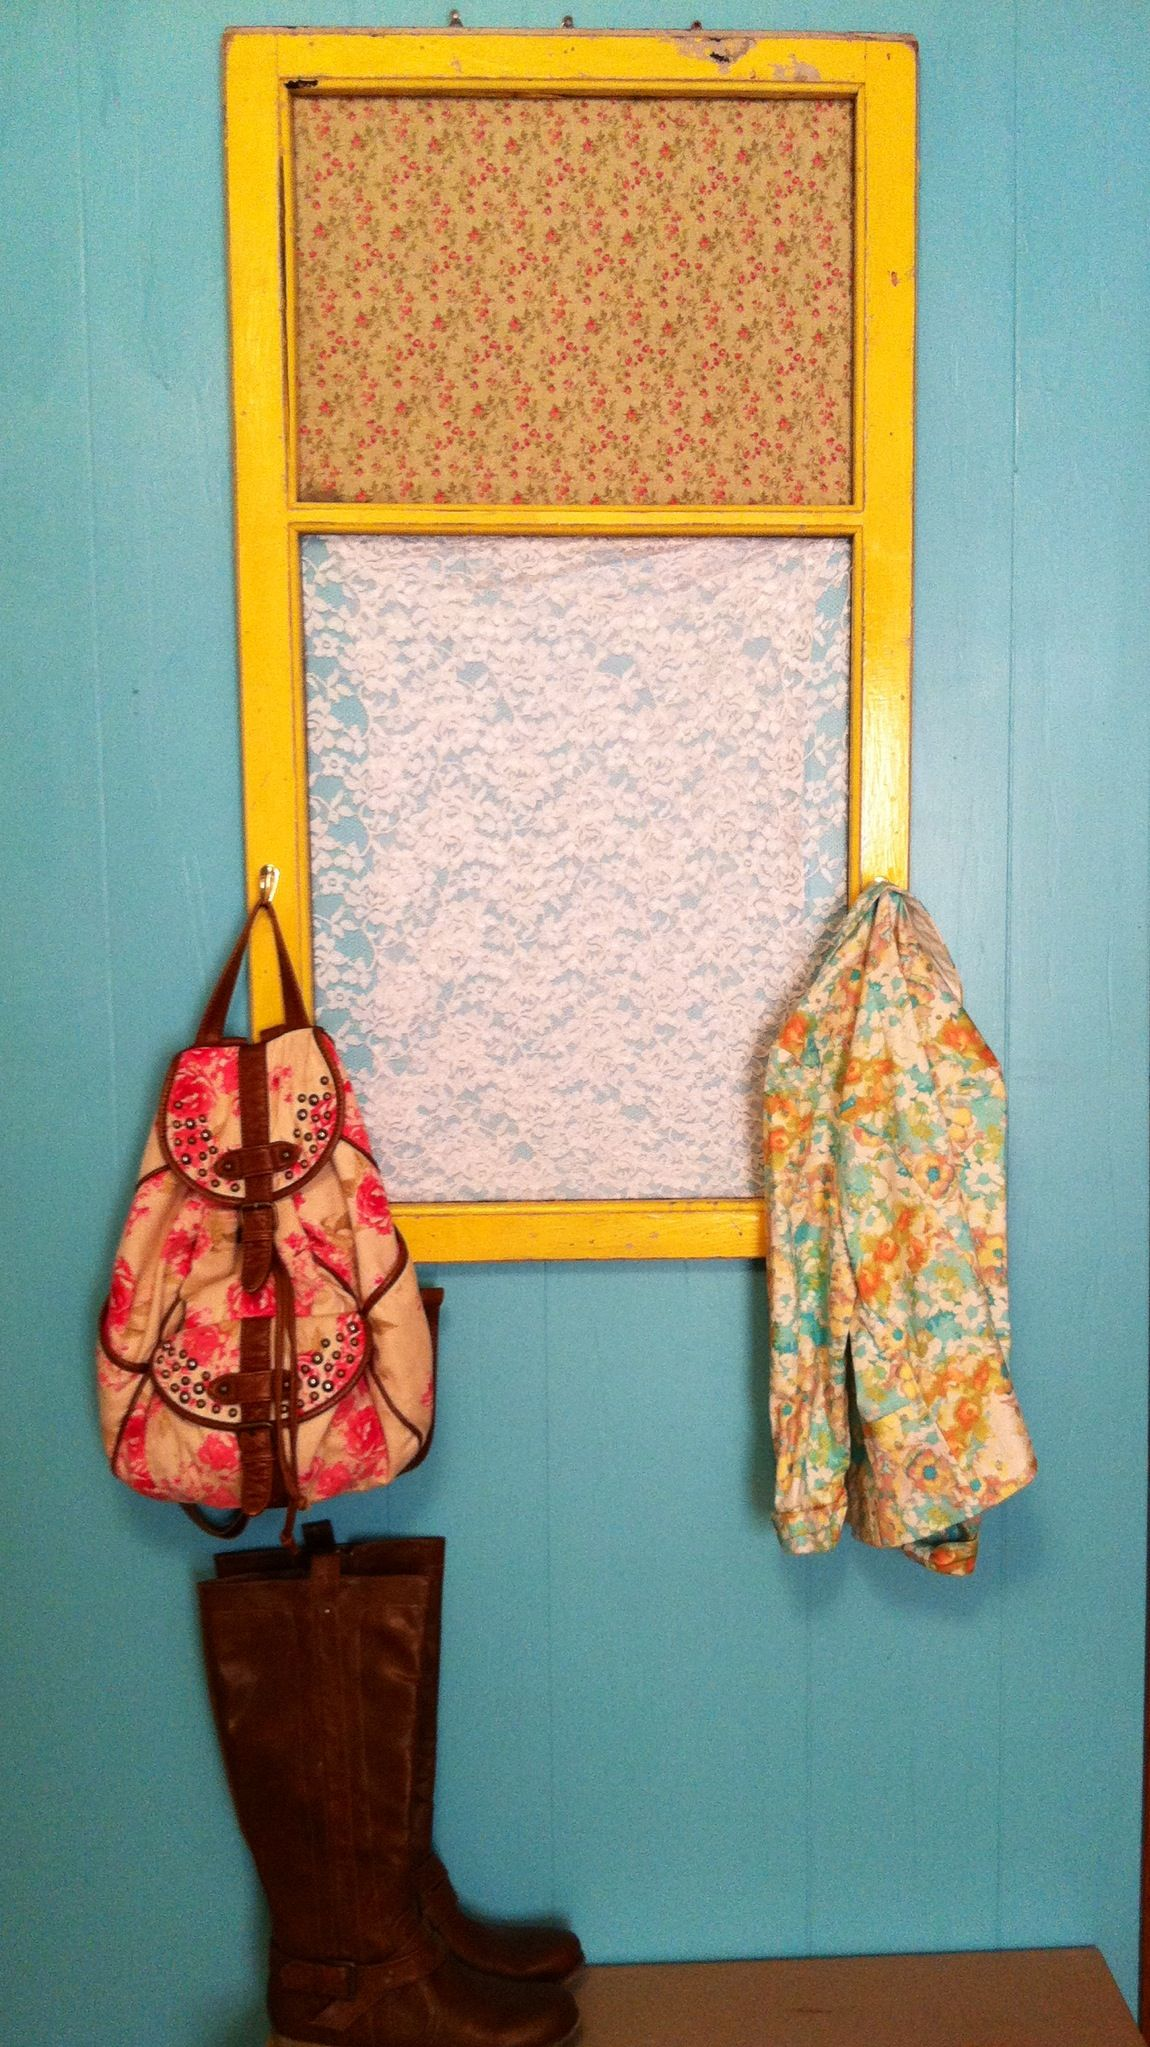 Found an old window frame in my basement. Distressed the yellow paint attached hooks, stapled fabric in the back on top and lace in the bottom. Super cute and vintage!!!